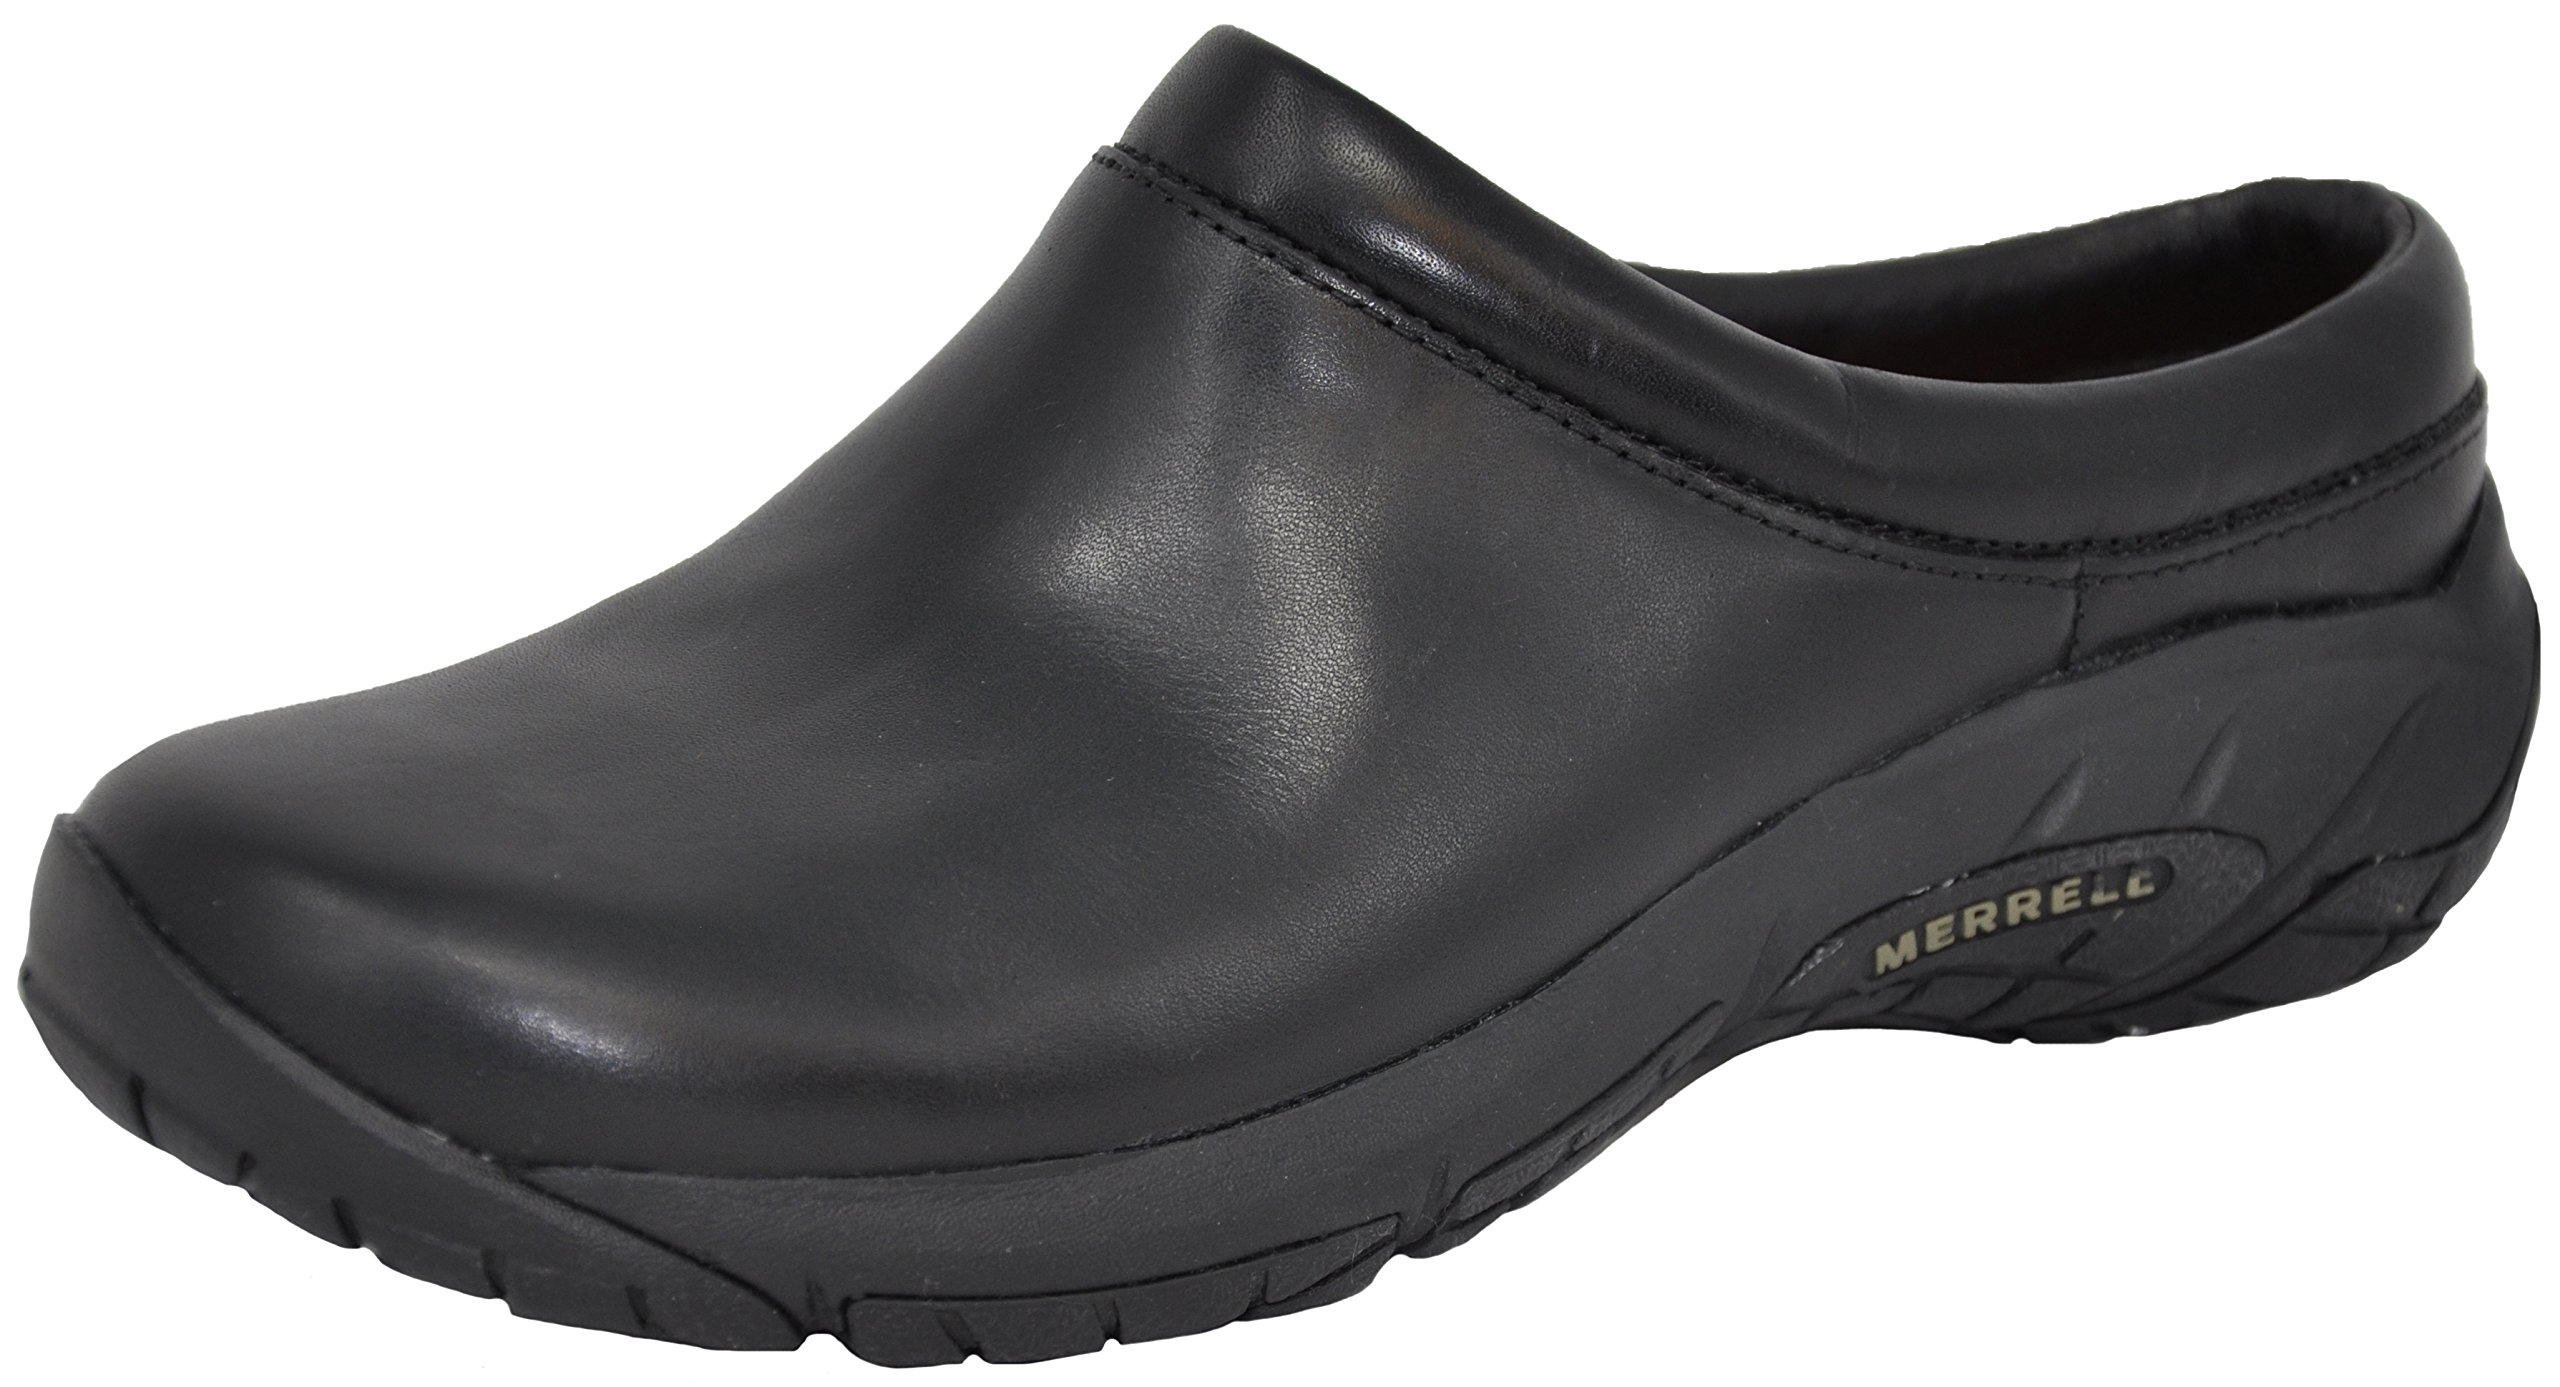 Merrell Women's Encore Nova 2 Trail Runner, Black Smooth, 8 B(M) US by Merrell (Image #1)